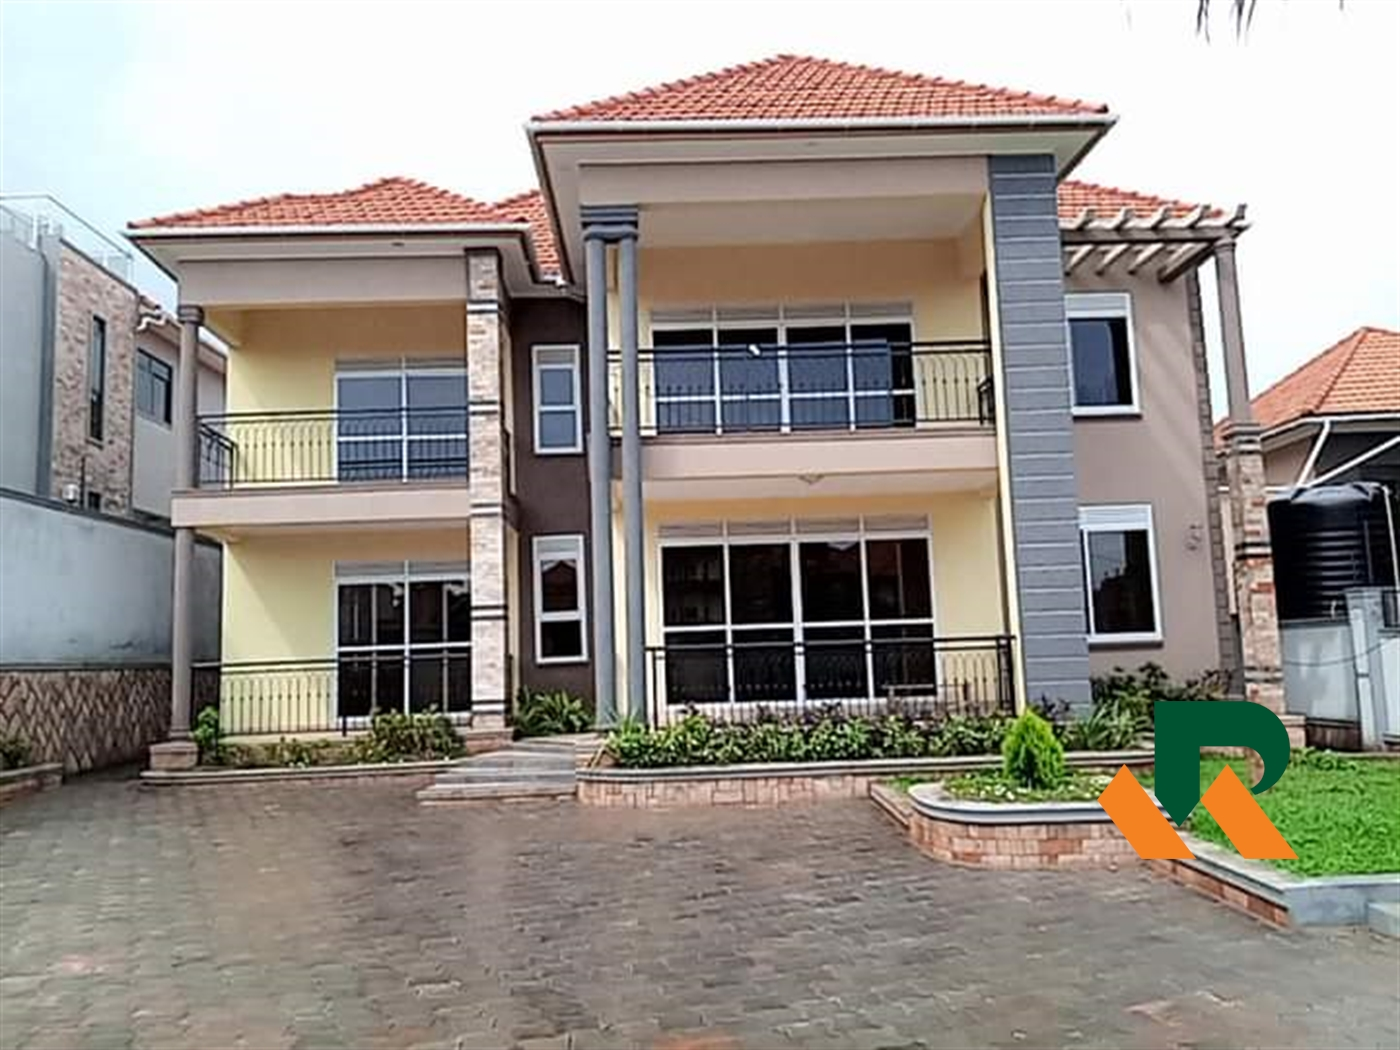 Storyed house for sale in Kyanja Wakiso